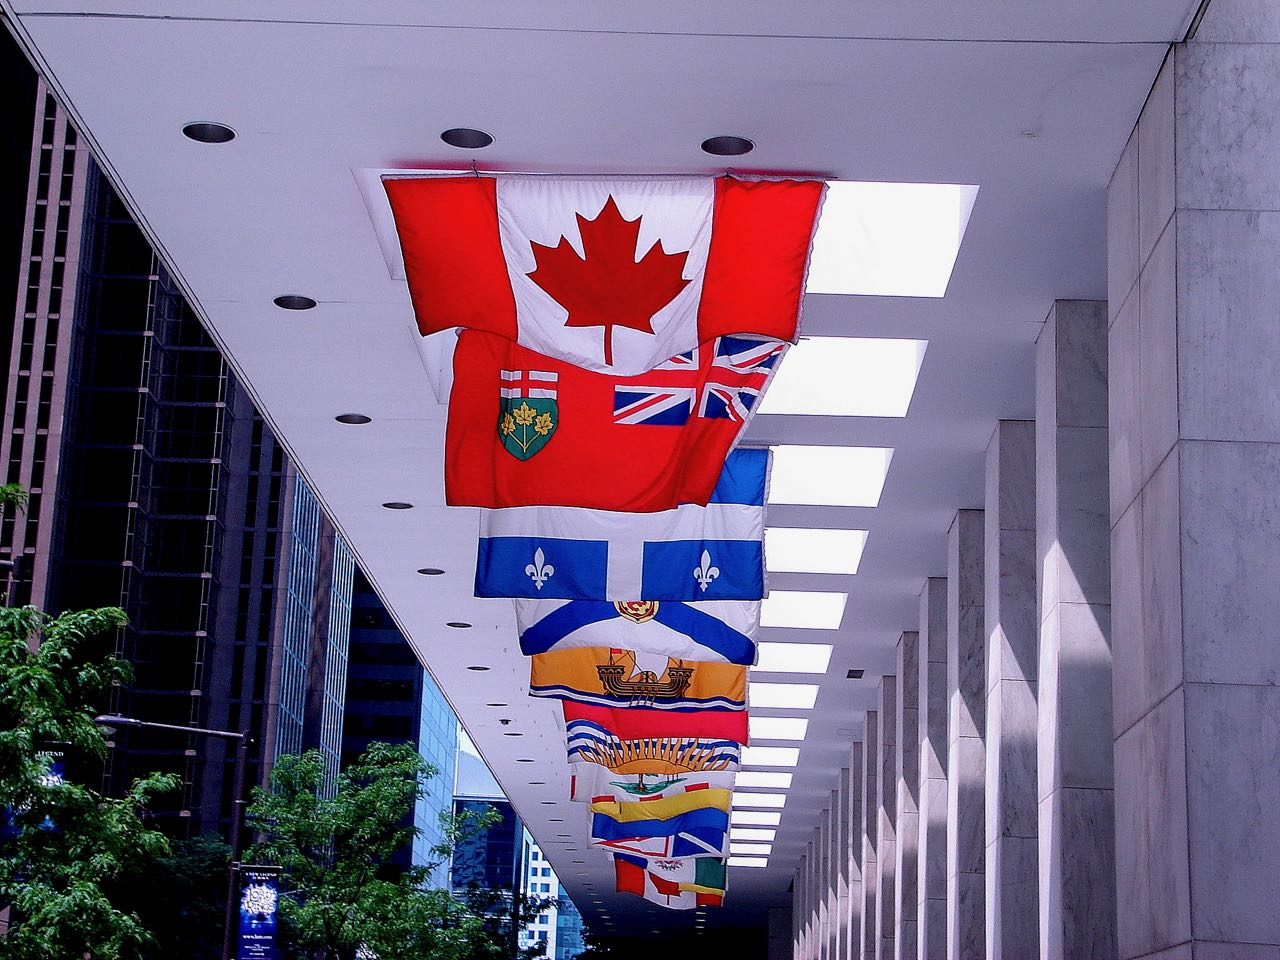 Flags outside an office building in Toronto, Canada. June 2005, Sony Cybershot DSC-S40